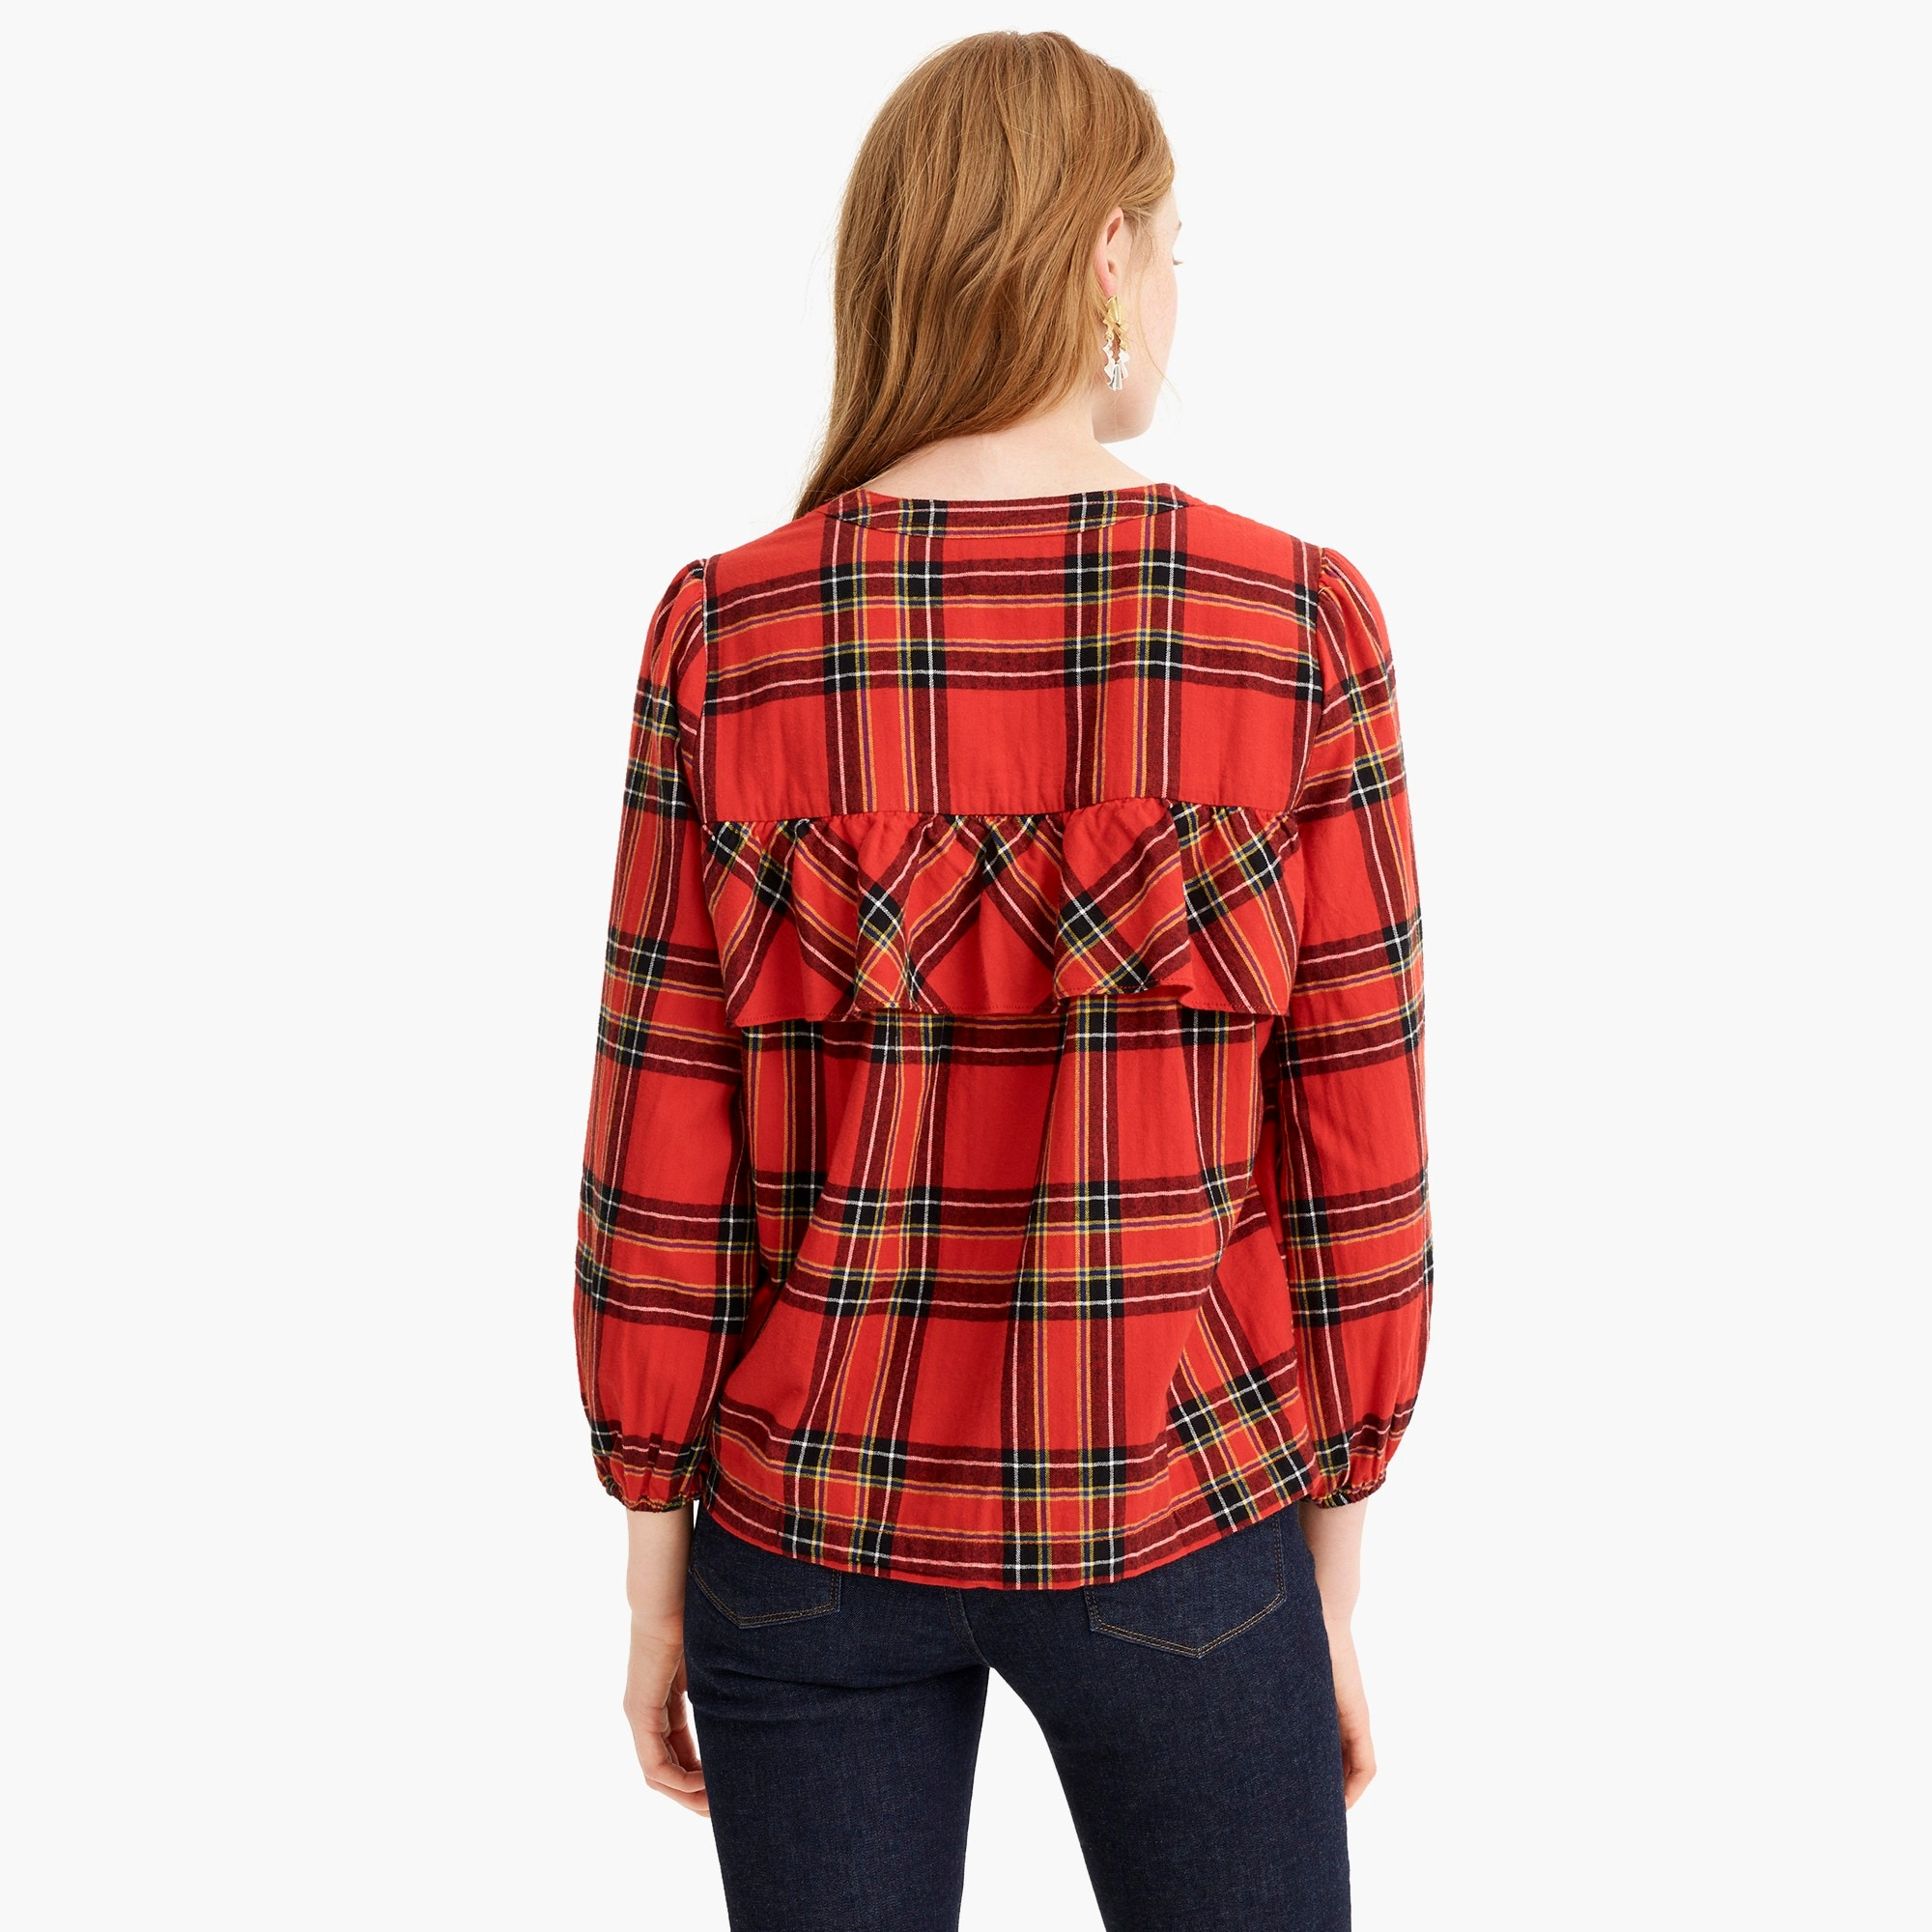 Image 5 for Ruffle top in festive plaid